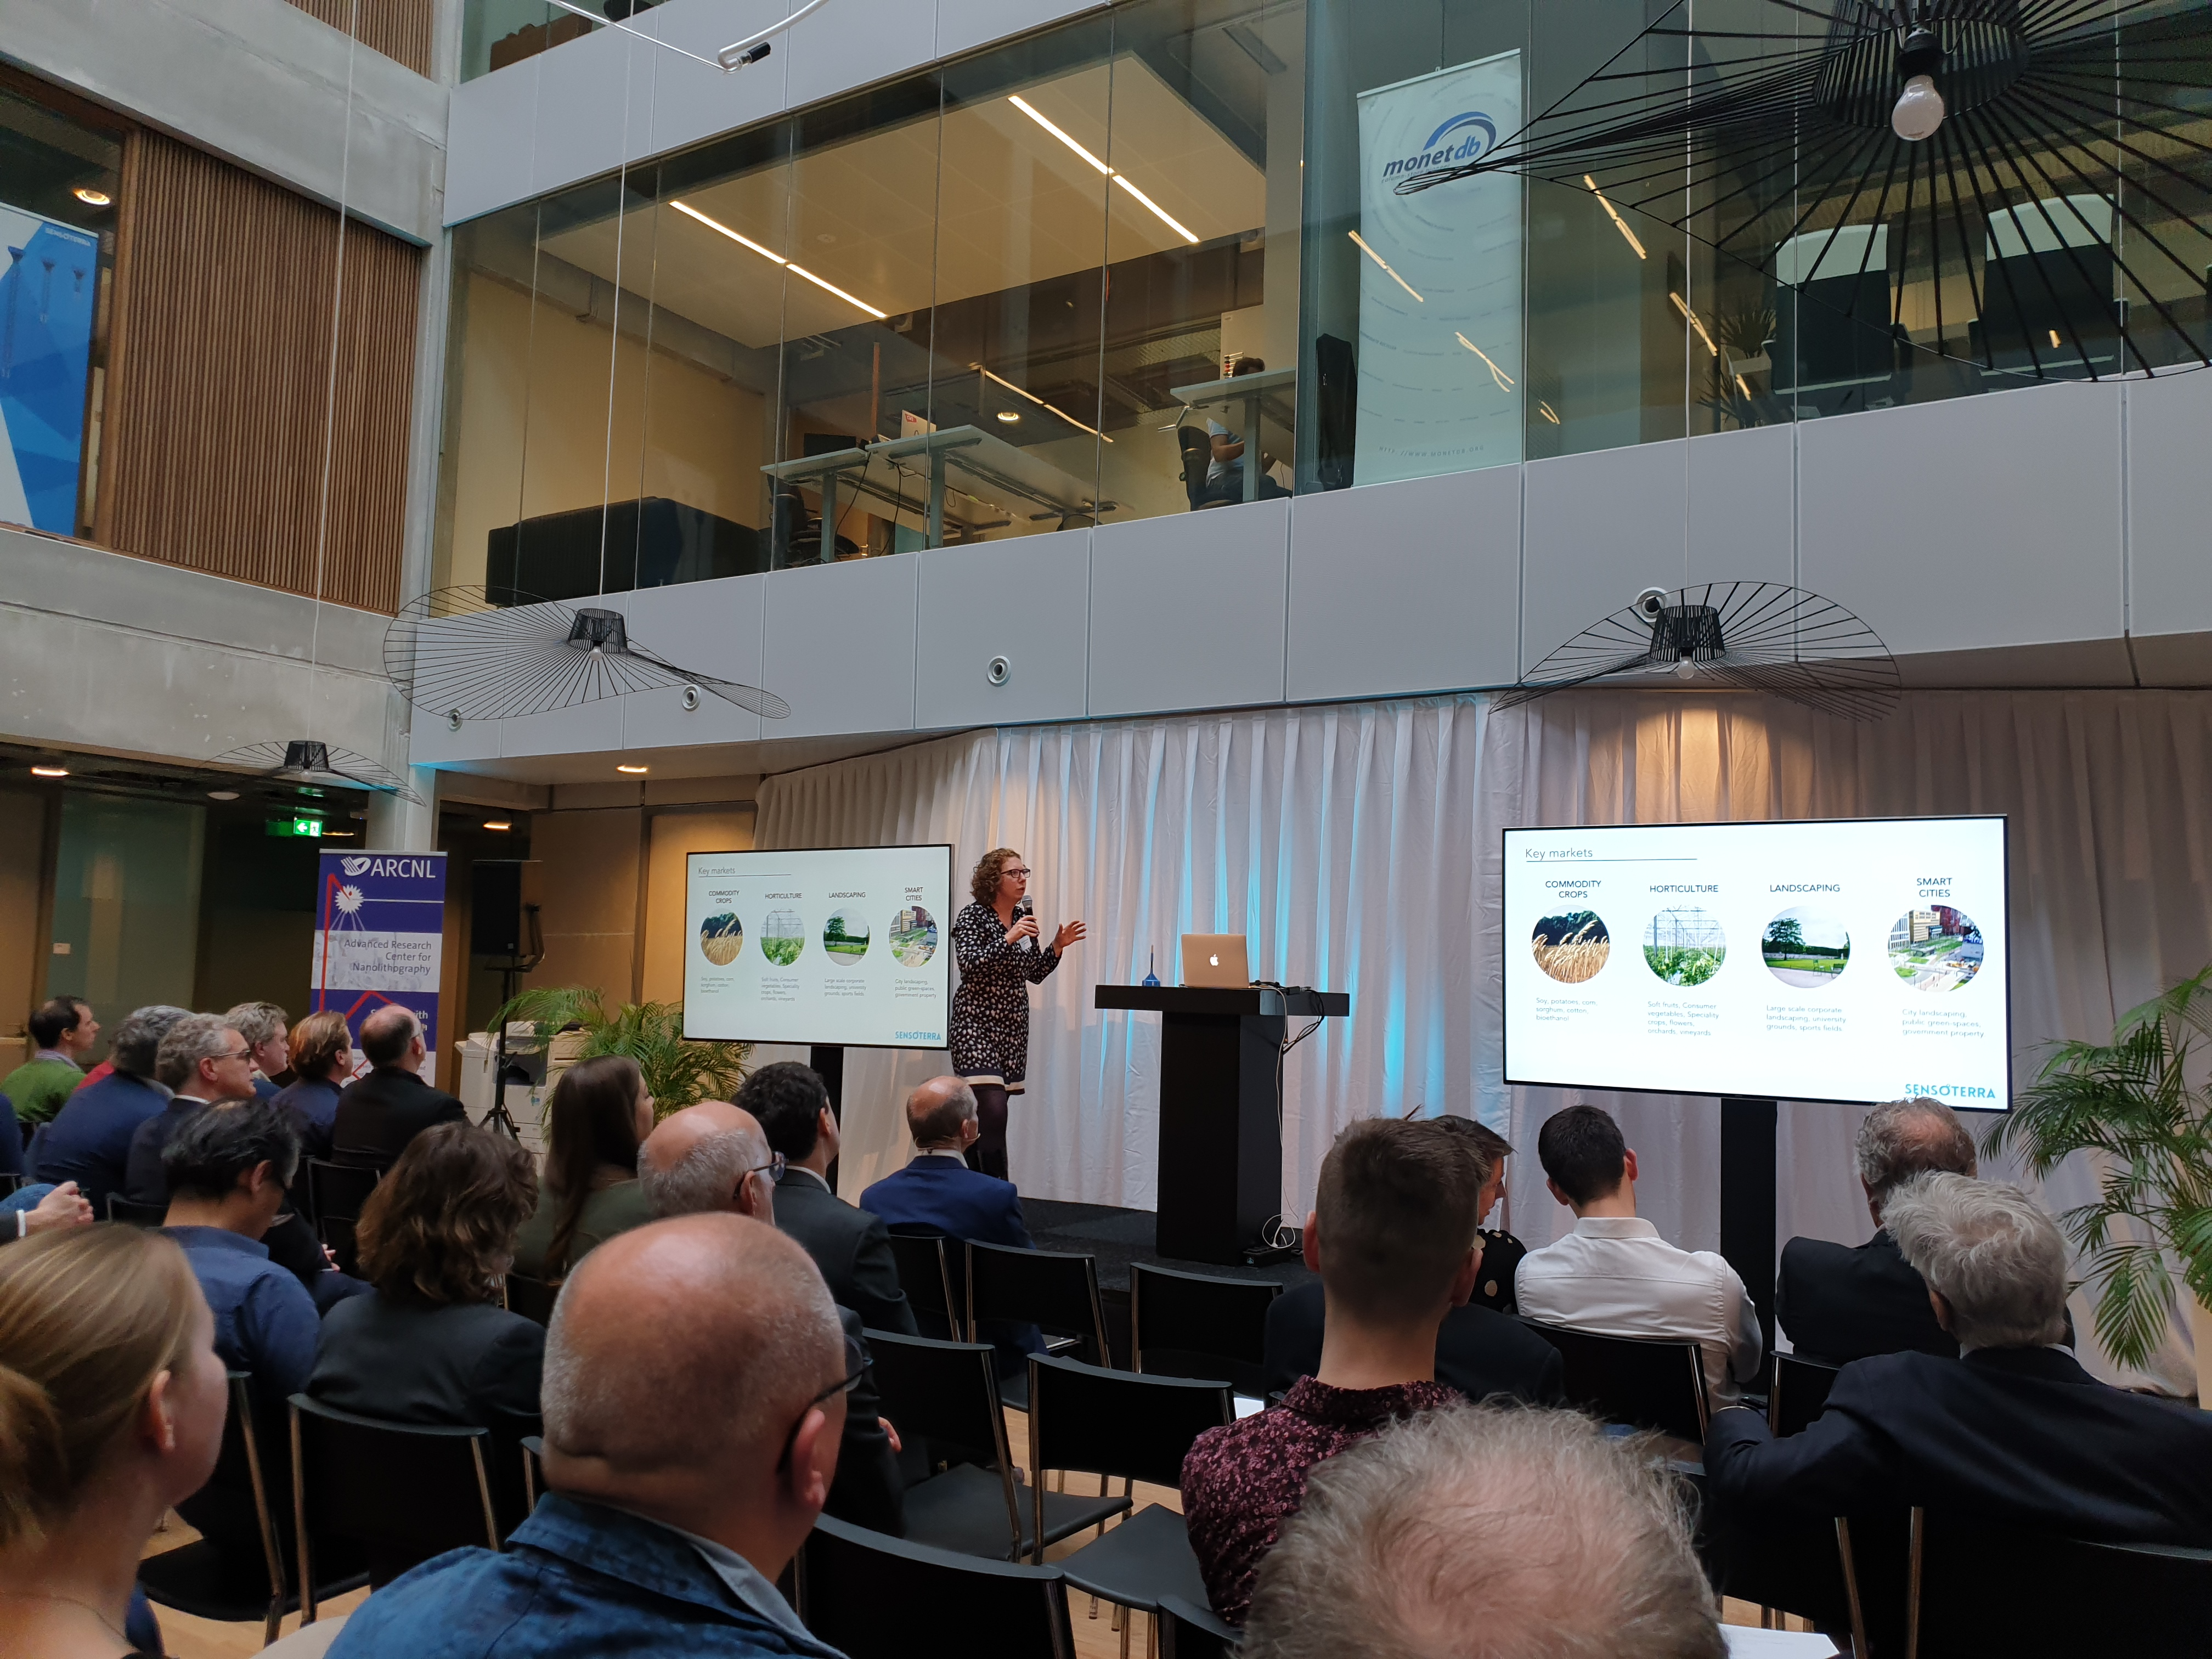 Introducing Sensoterra at the Matrix VII official opening, Science Park - Amsterdam